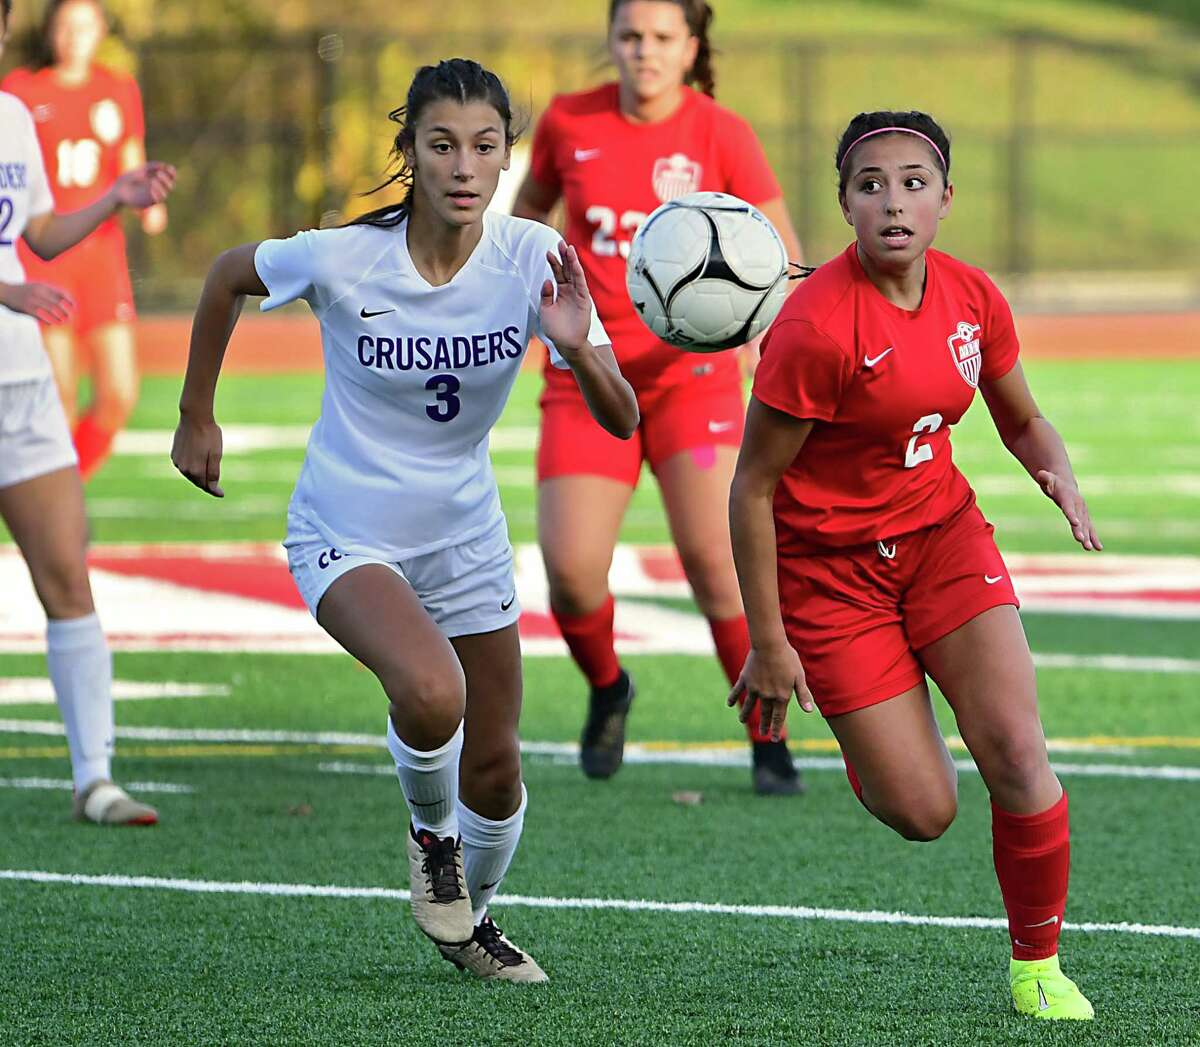 Catholic Central High School's Sam Drake, left, vies for the ball with Mechanicville's Nevaeh D'Alioa during the Class B girl's soccer playoff game on Thursday, Oct. 24, 2019 in Mechanicville, N.Y. D'Alioa scored two goals in the game. (Lori Van Buren/Times Union)